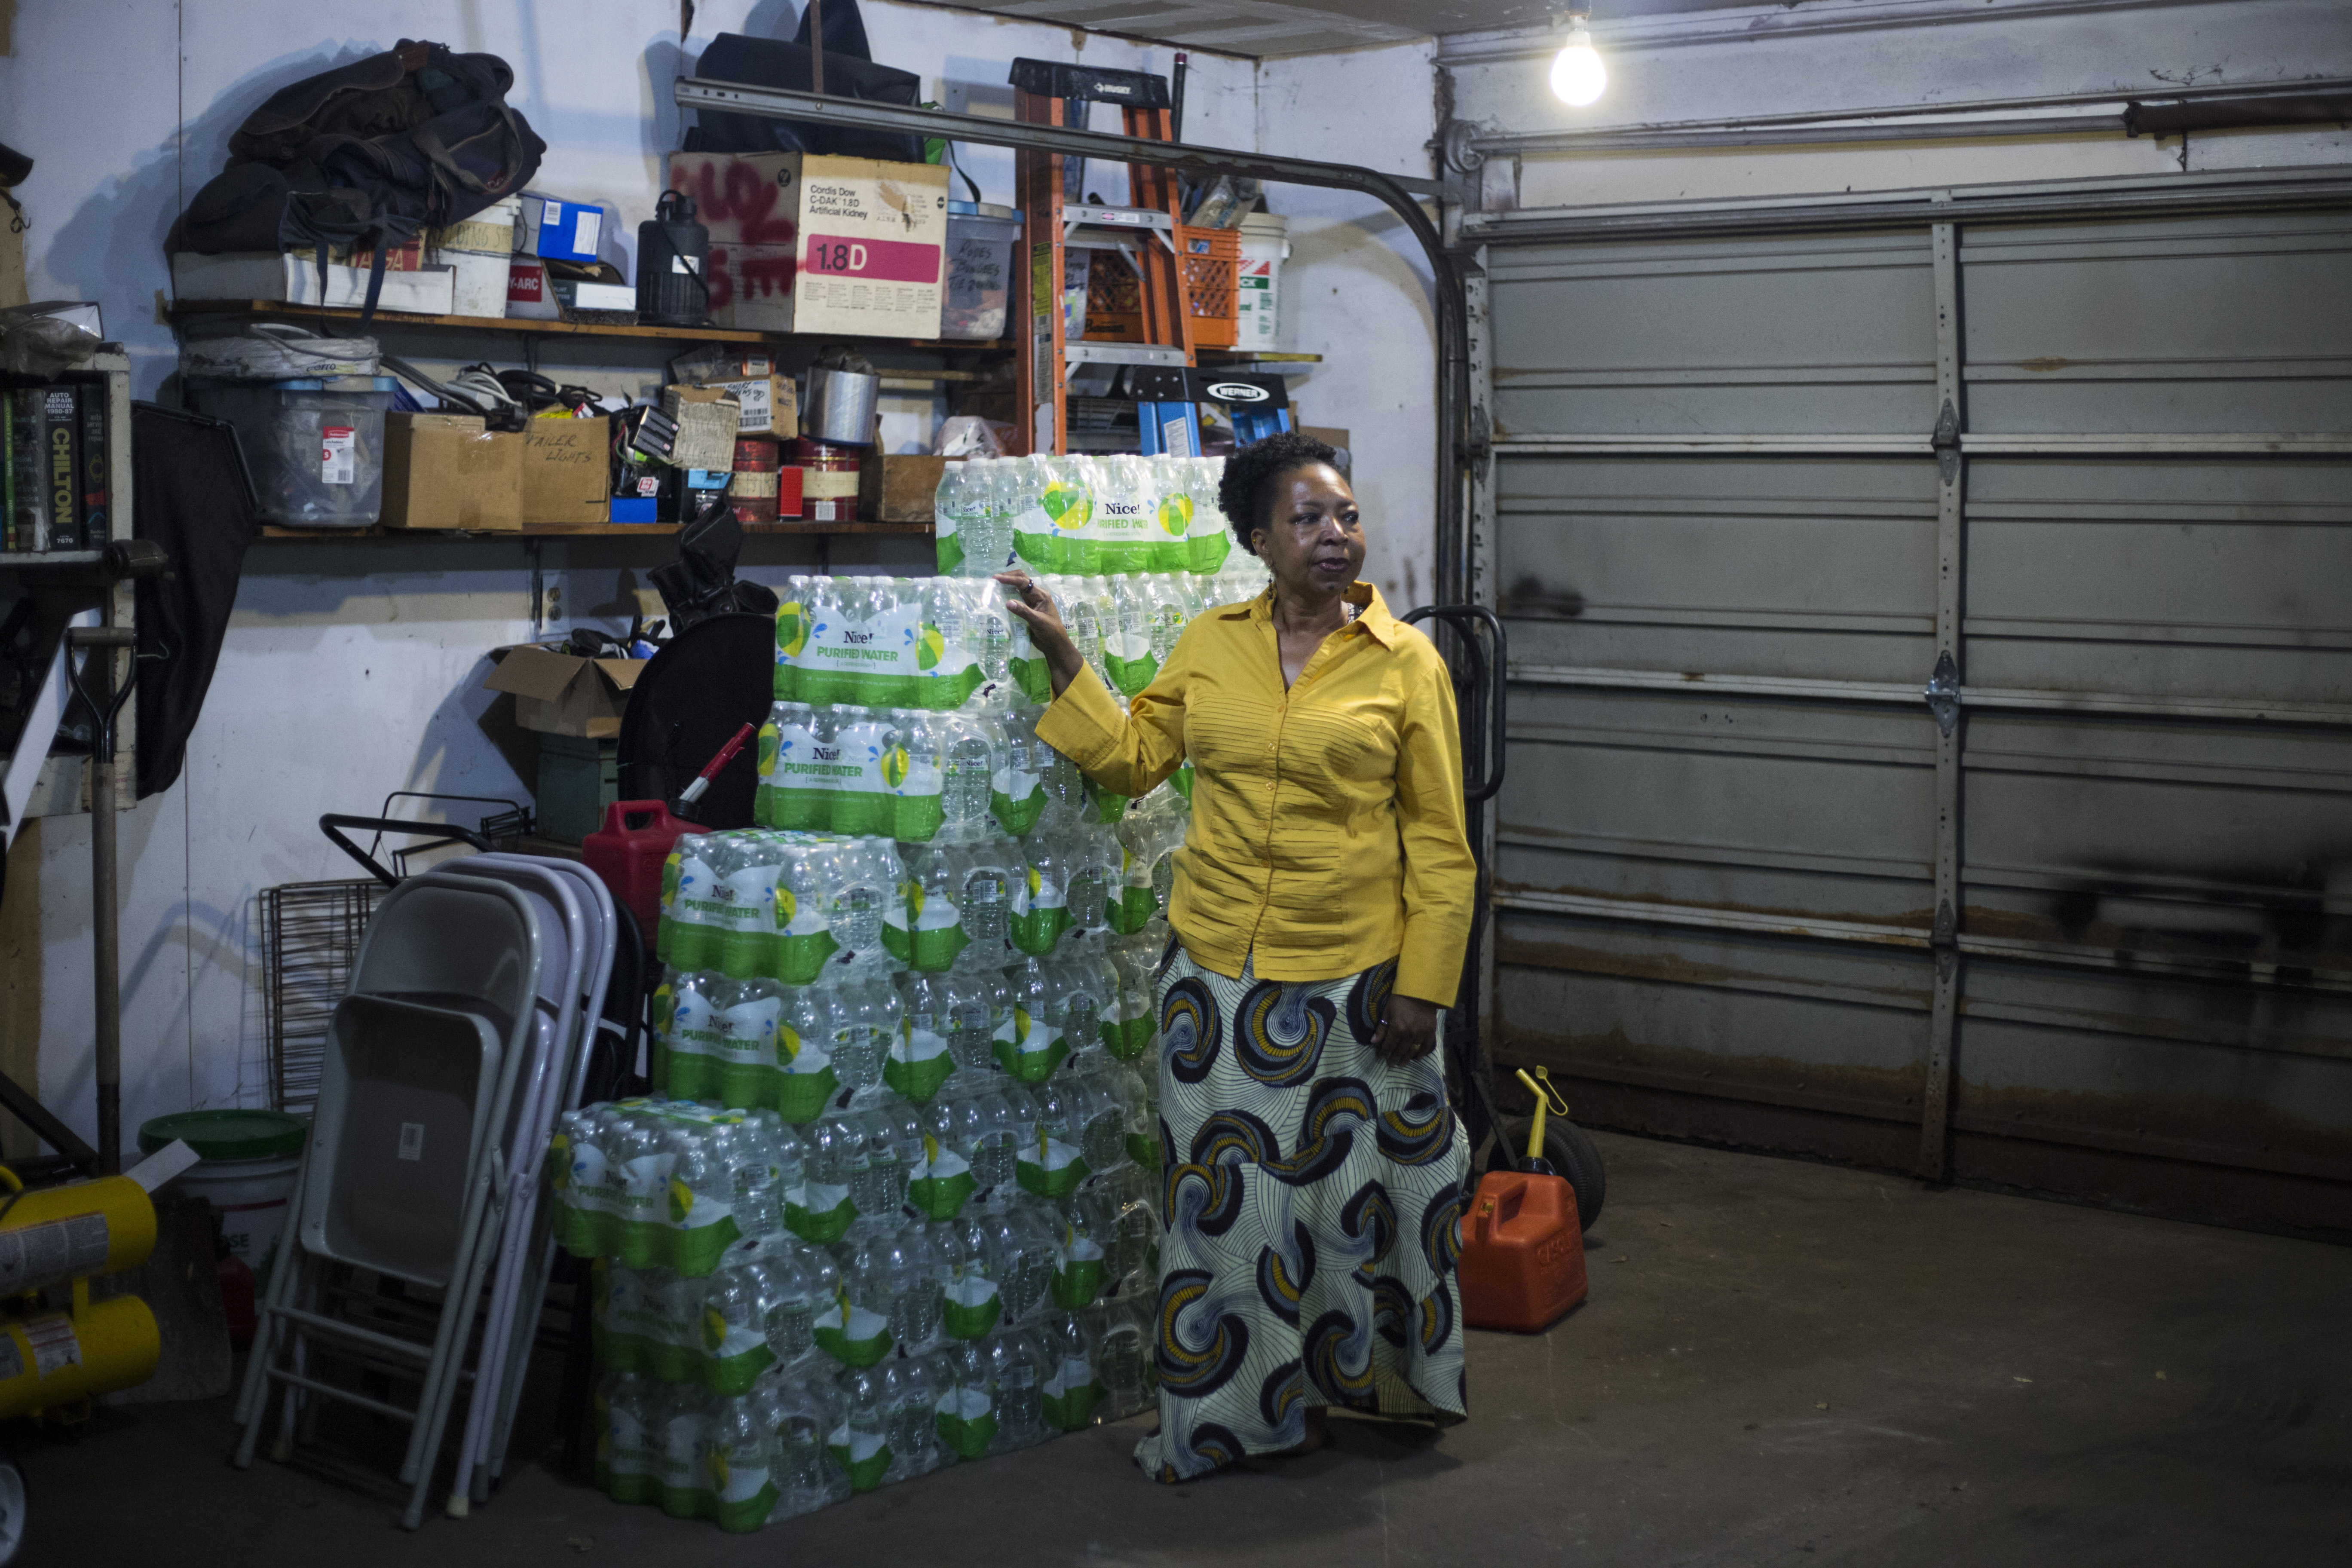 Darlene McClendon, 62, at her home in Flint, Michigan, on Tuesday, October 11, 2016. Amidst a struggling school system, McClendon, a 6th grade teacher at Eisenhower Elementary School, said the water crisis has only made her worry more for the future of her students. MUST CREDIT: Photo by Brittany Greeson for The Washington Post